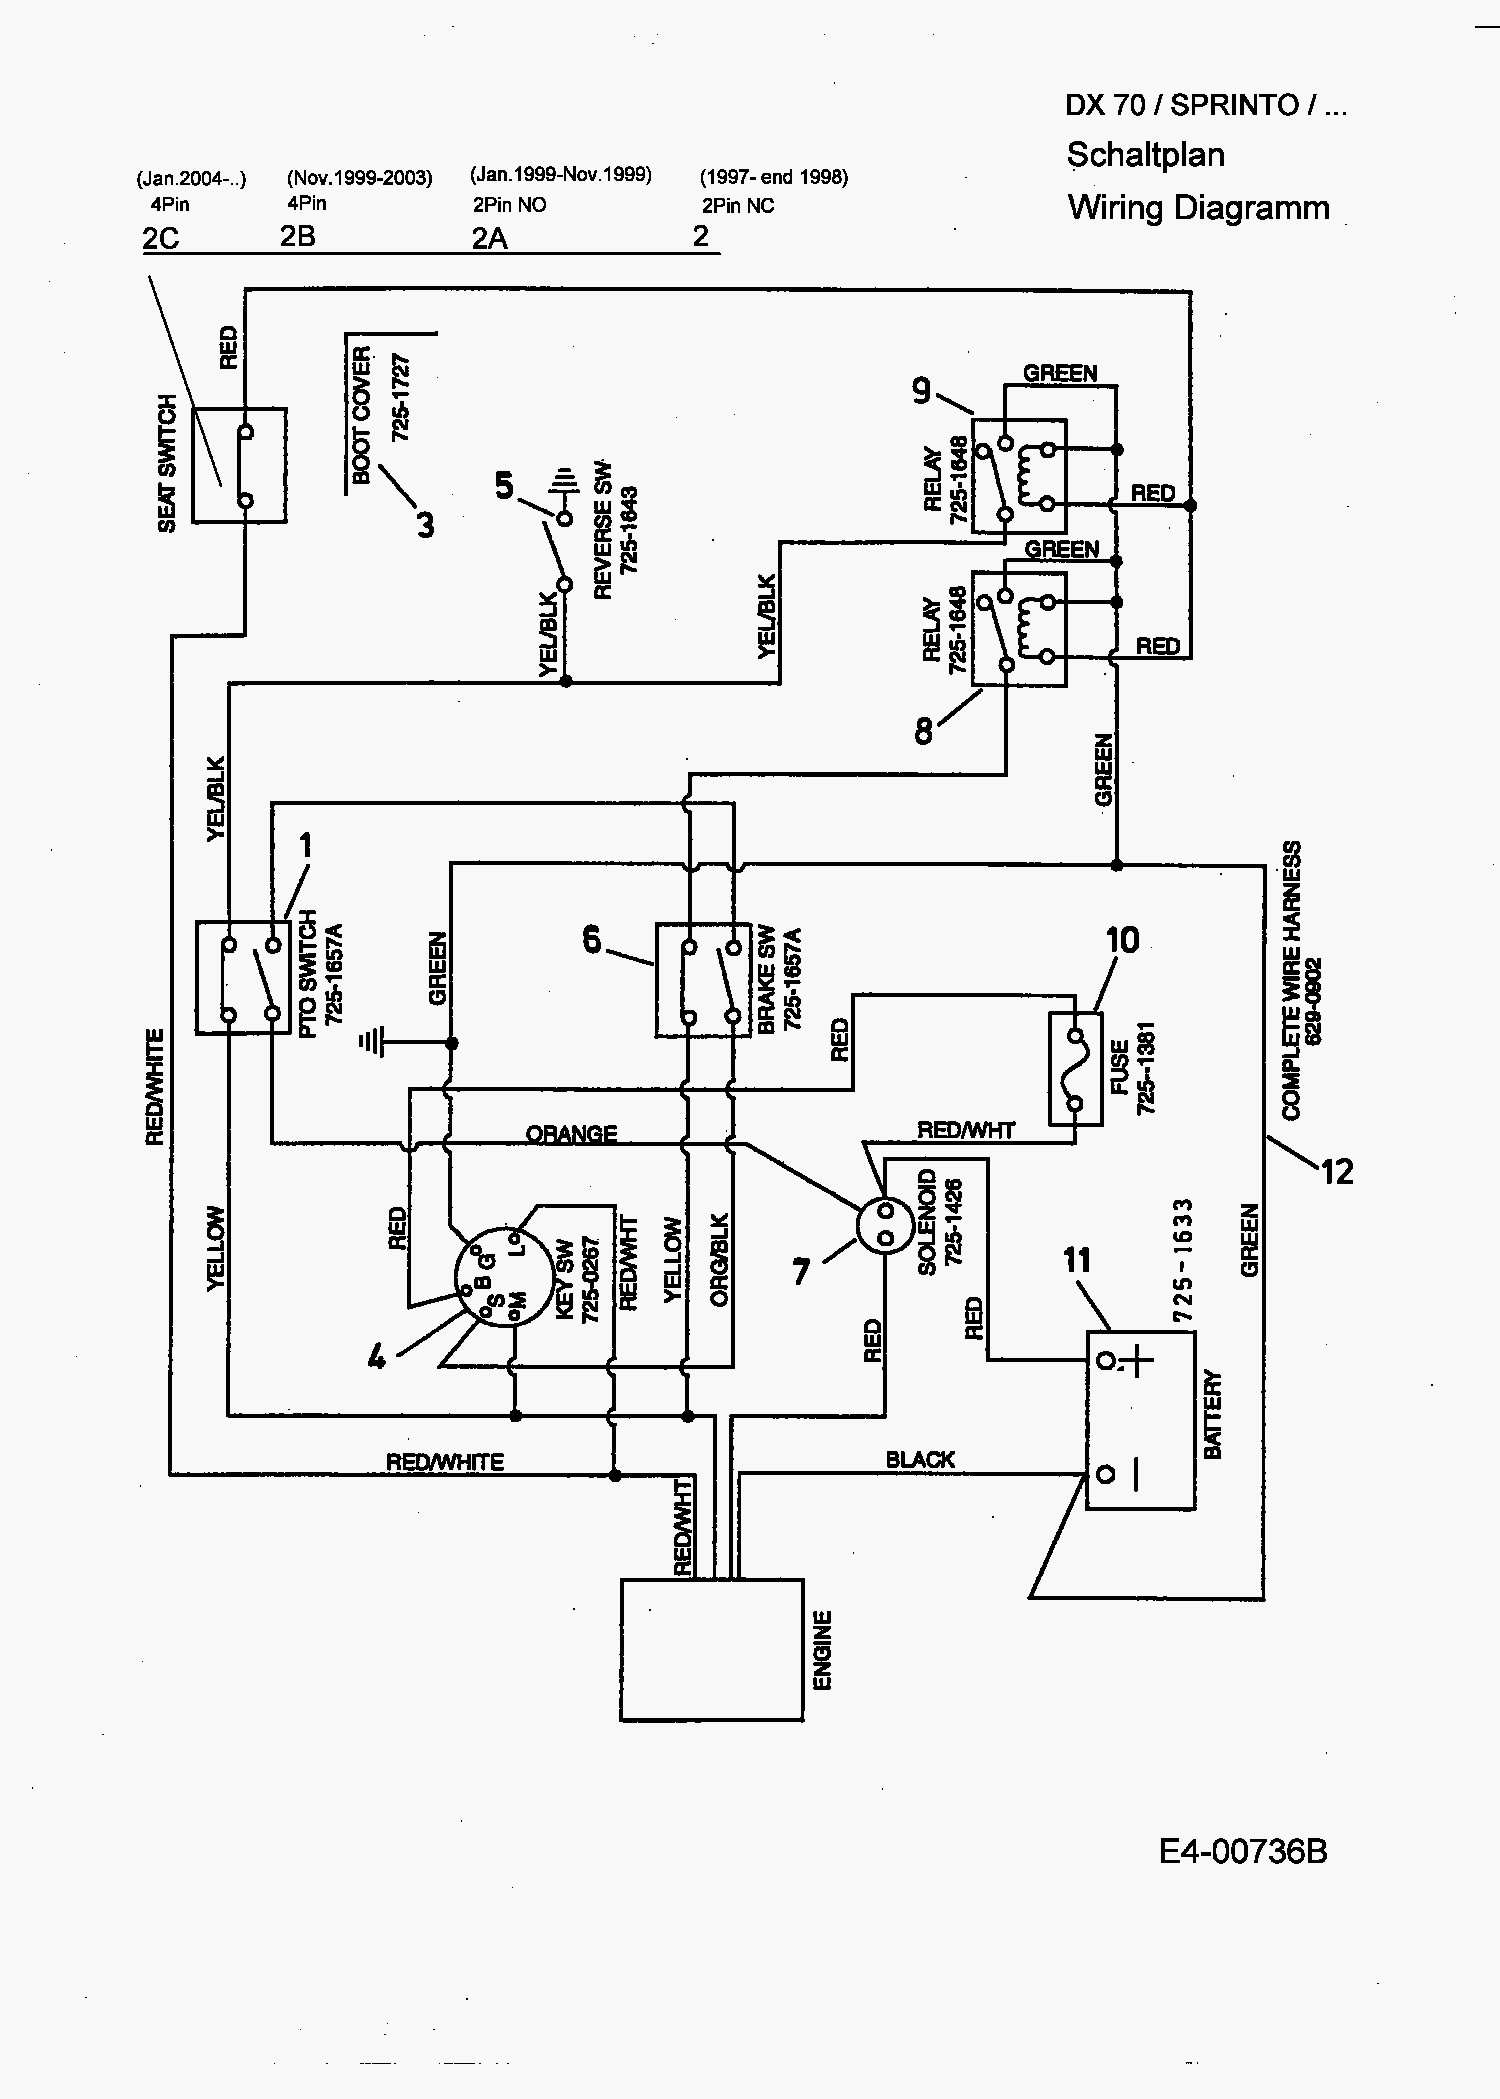 Bad Boy Buggies Wire Diagram Wiring Diagram Mtd Lawn Tractor Wiring Diagram and by Wiring Of Bad Boy Buggies Wire Diagram